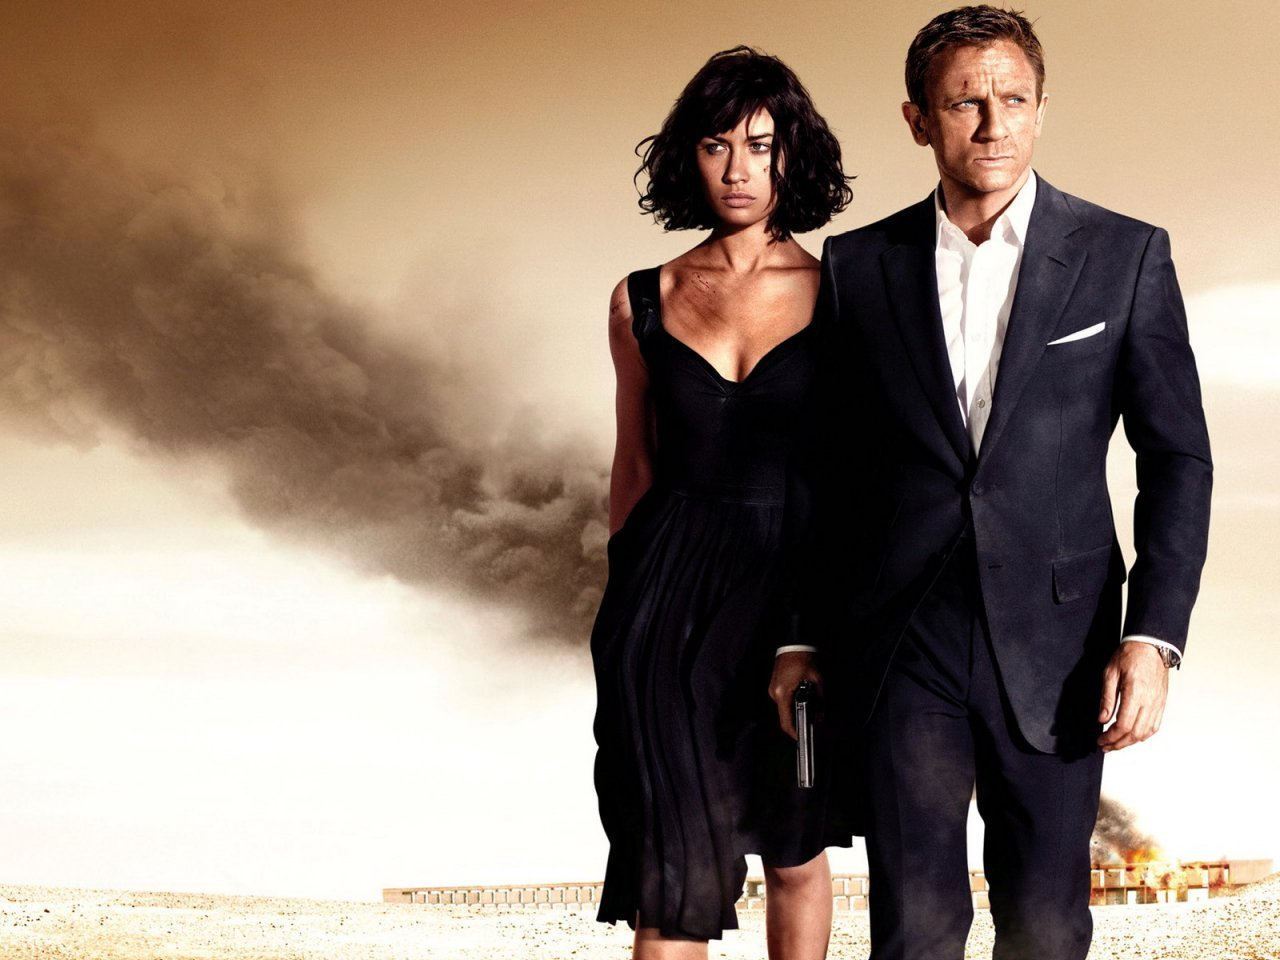 james bond casino royale full movie online jetztspelen.de